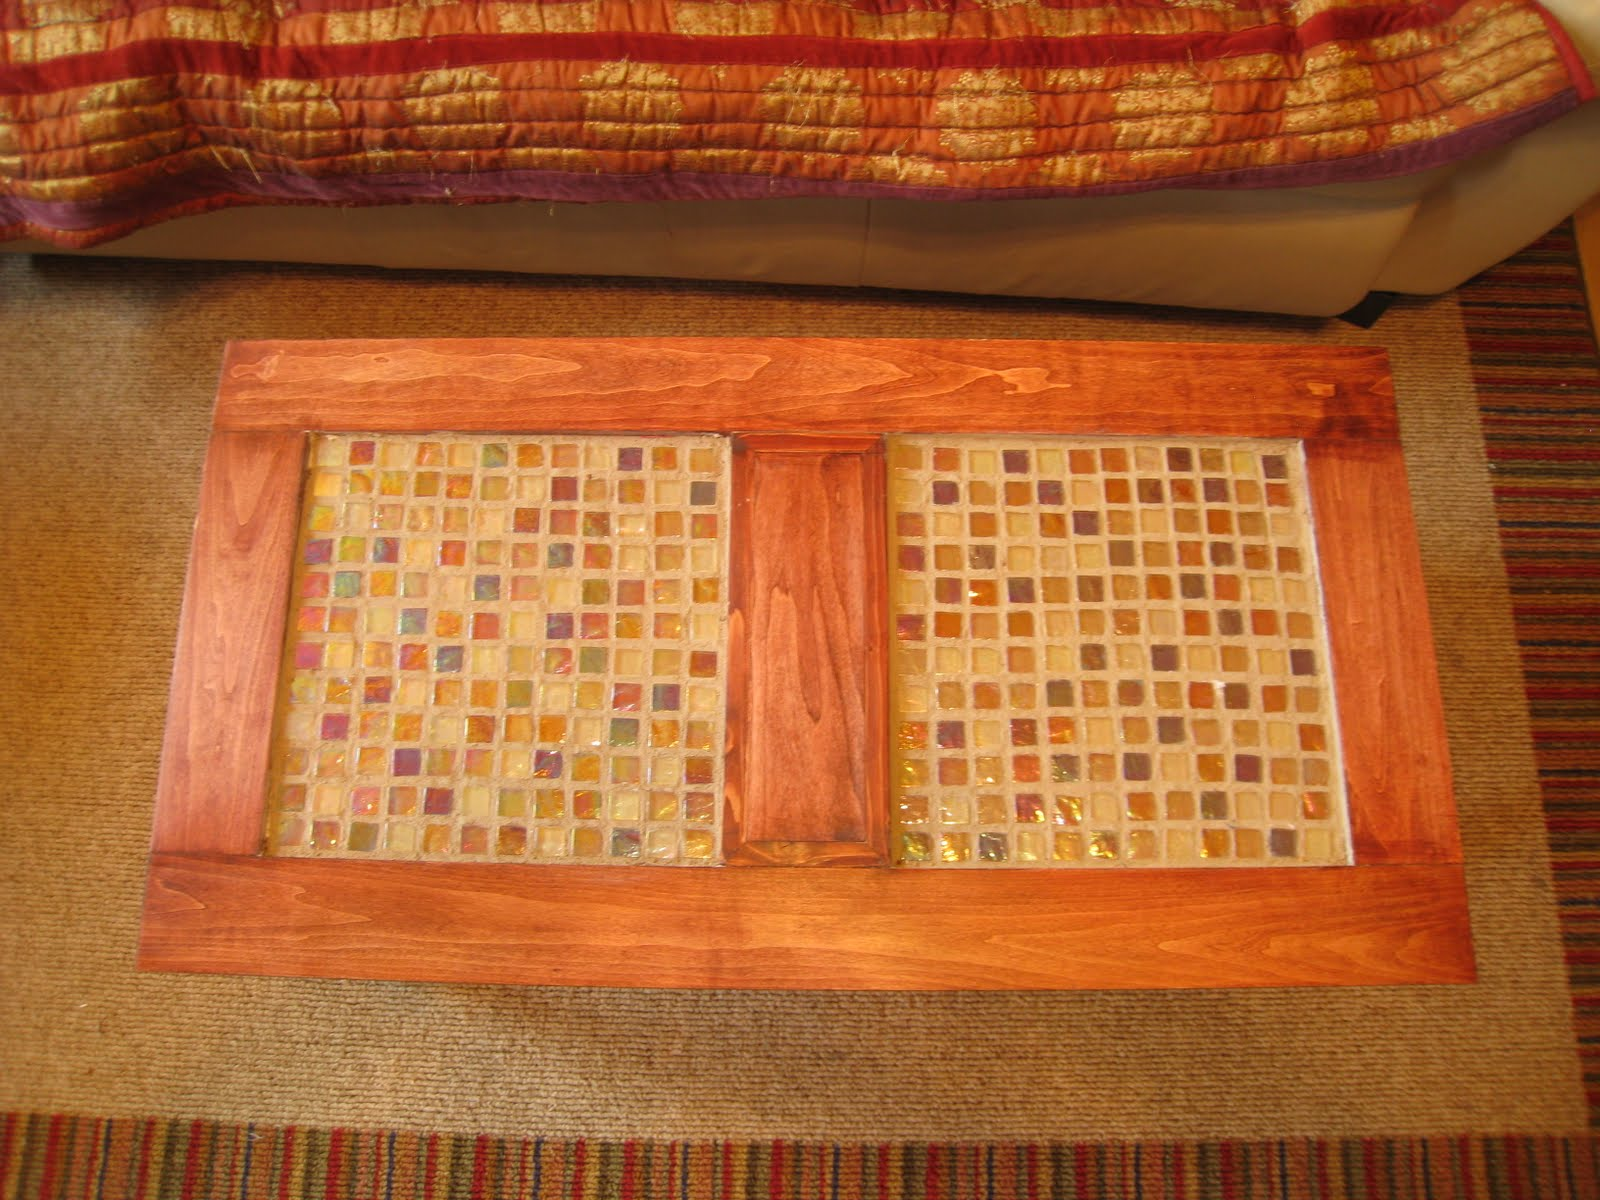 john i. designs: tiled coffee table